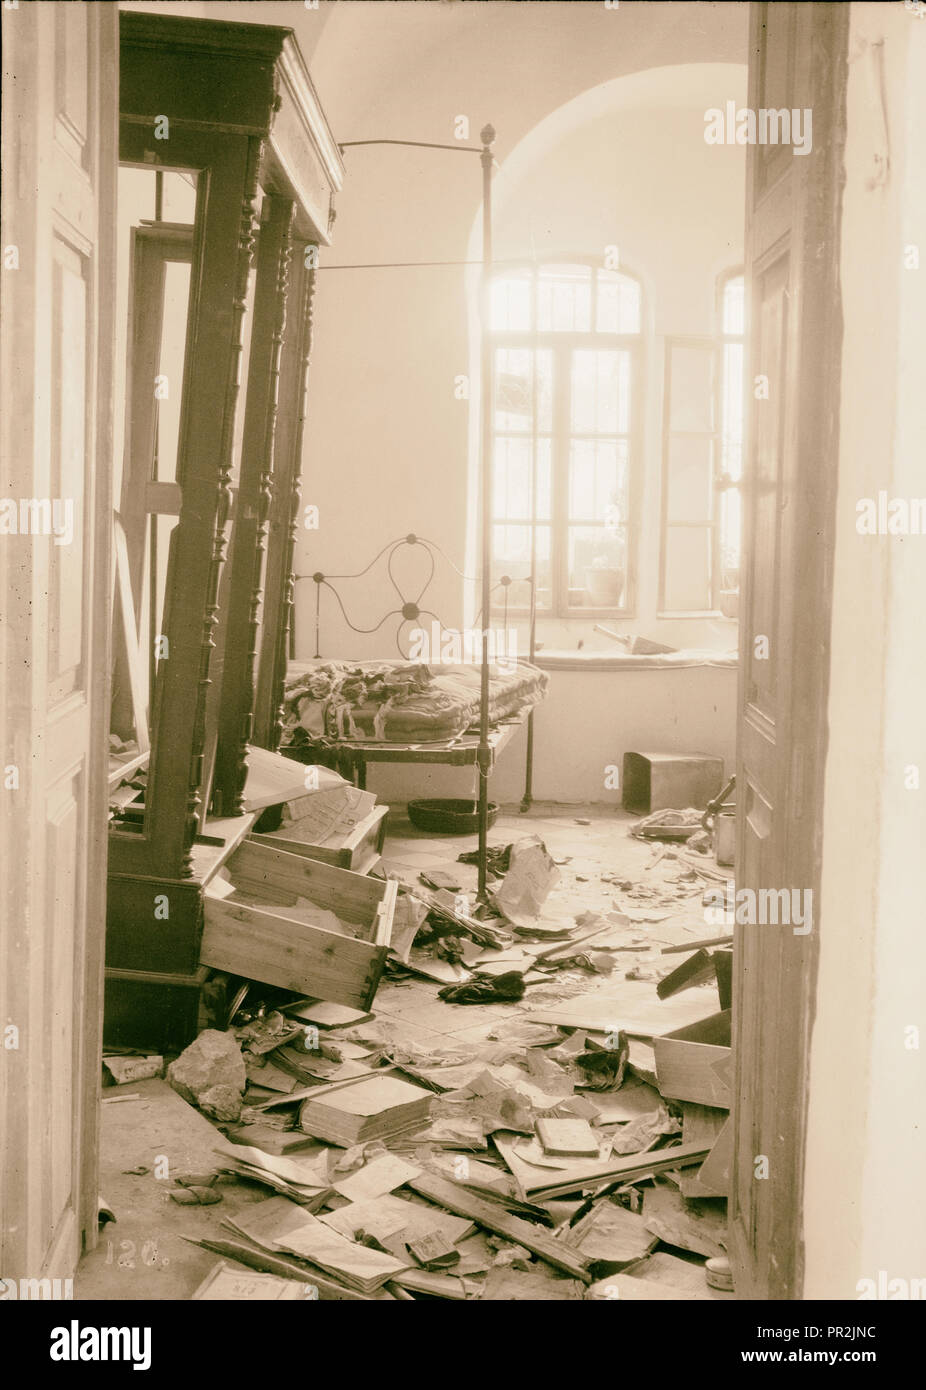 Palestine events. The 1929 riots, August 23 to 31. Jewish home plundered by Arab rioters in Hebron. Floor covered with wreckage Stock Photo